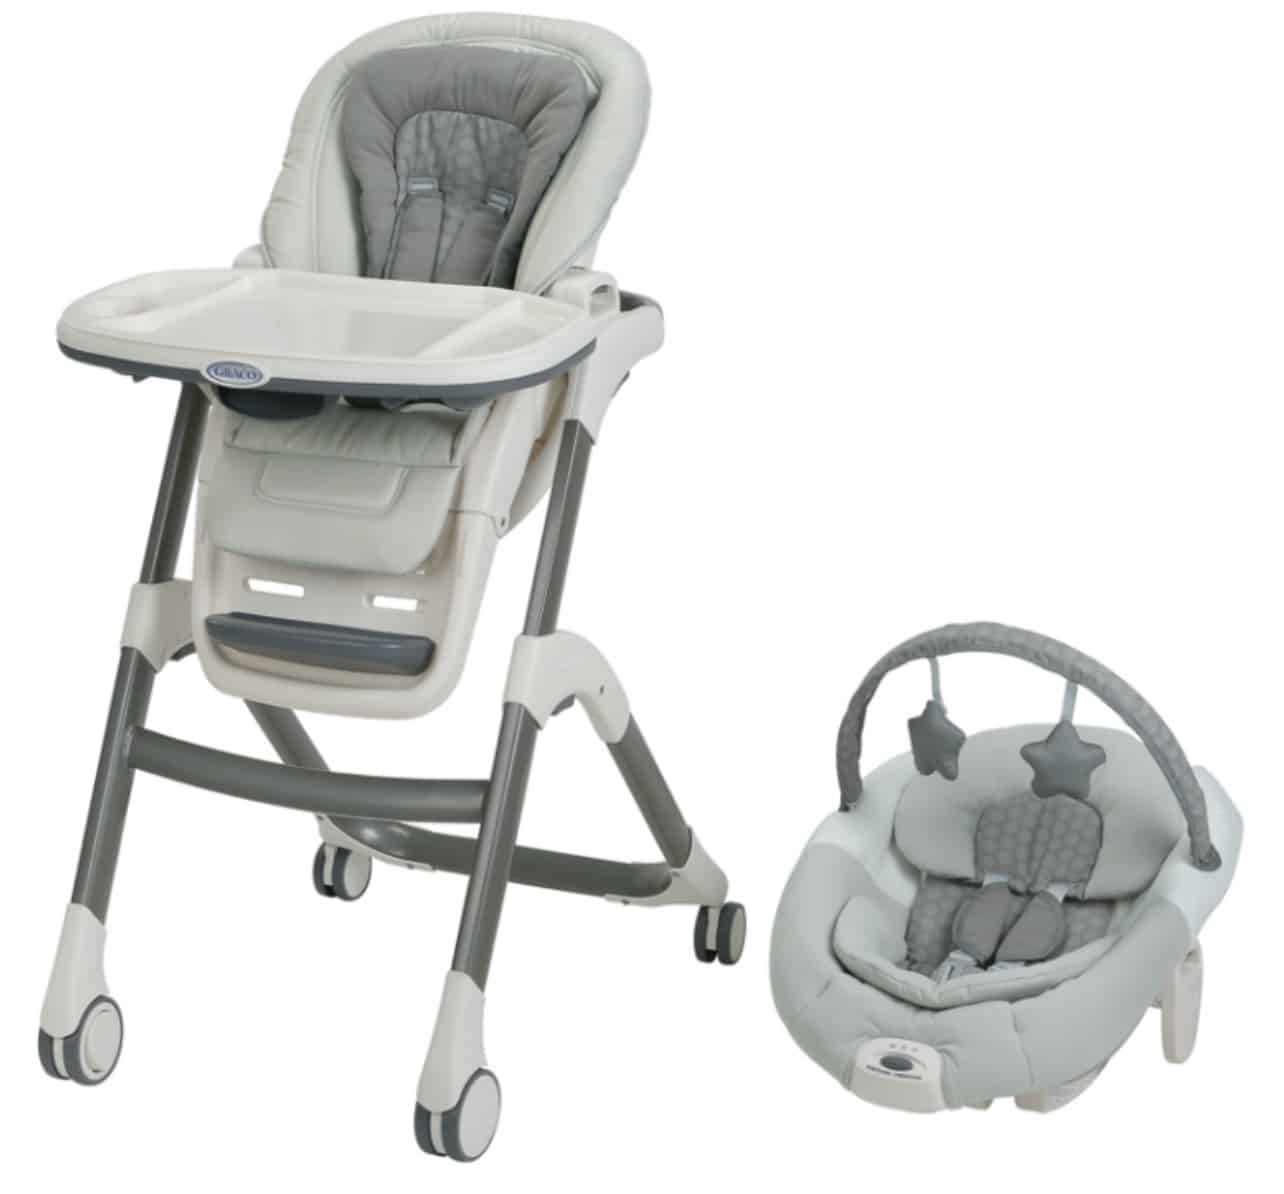 graco sous chef multi mode seating system how to safety car seat installation inspection. Black Bedroom Furniture Sets. Home Design Ideas